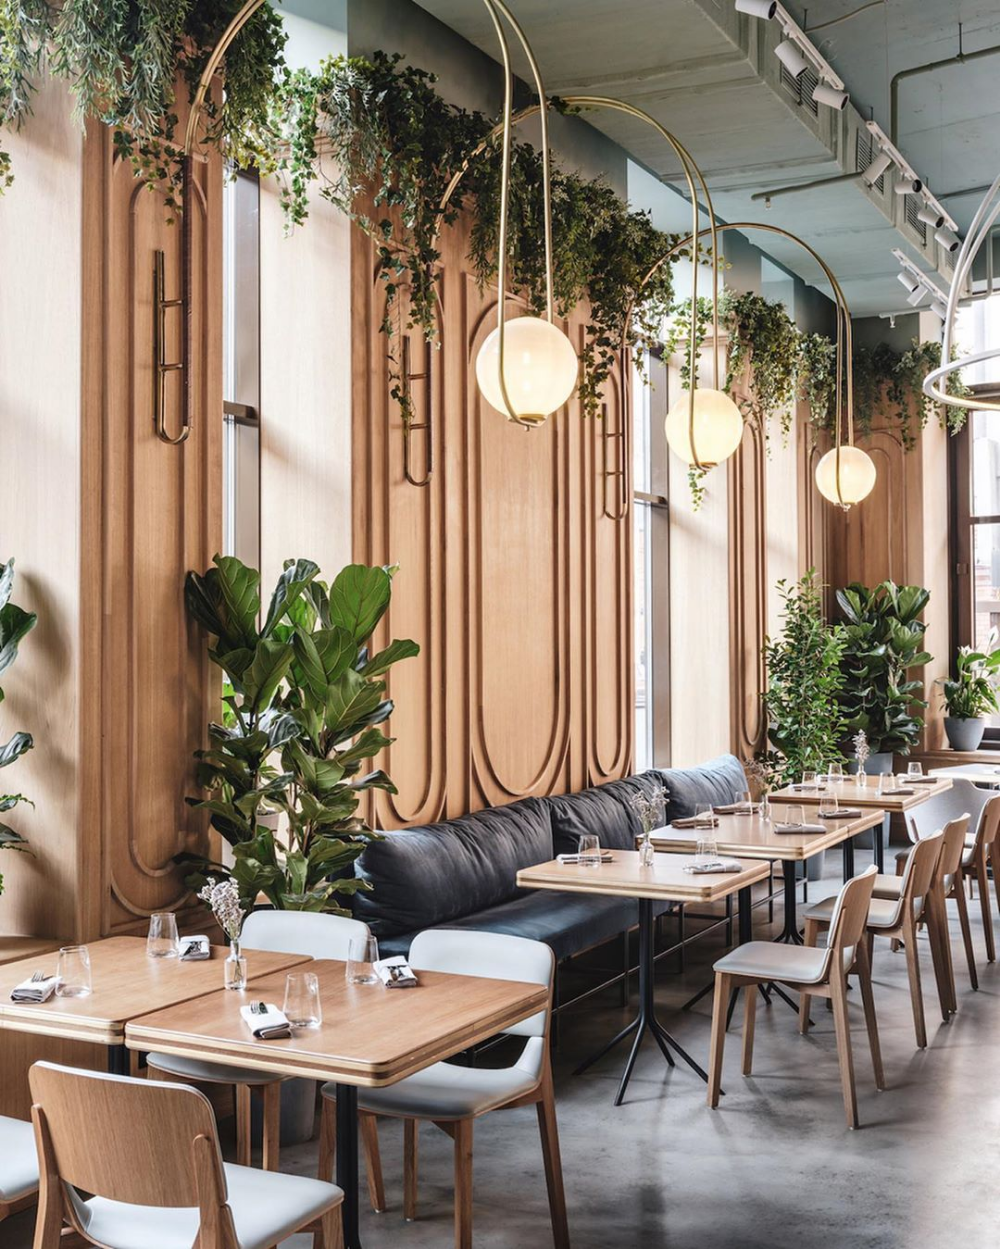 Wood Walls With Circular Trim Lots Of Plants Big Bulb Lighting In 2020 Restaurant Interior Design Restaurant Interior Cafe Interior Design